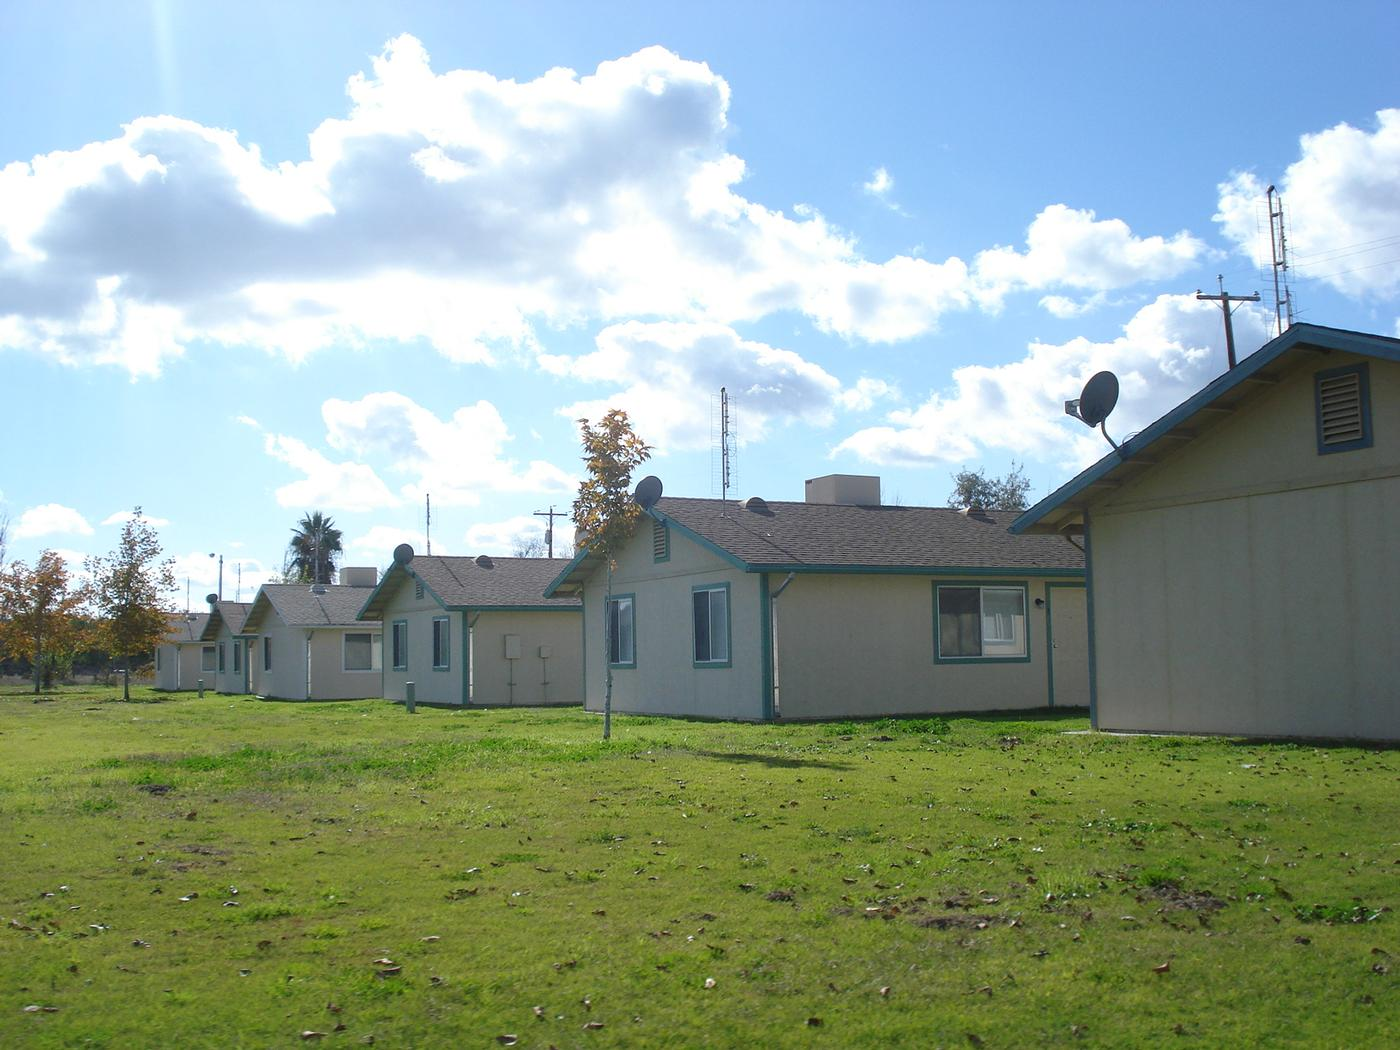 NORTH SHAFTER FARM LABOR CENTER